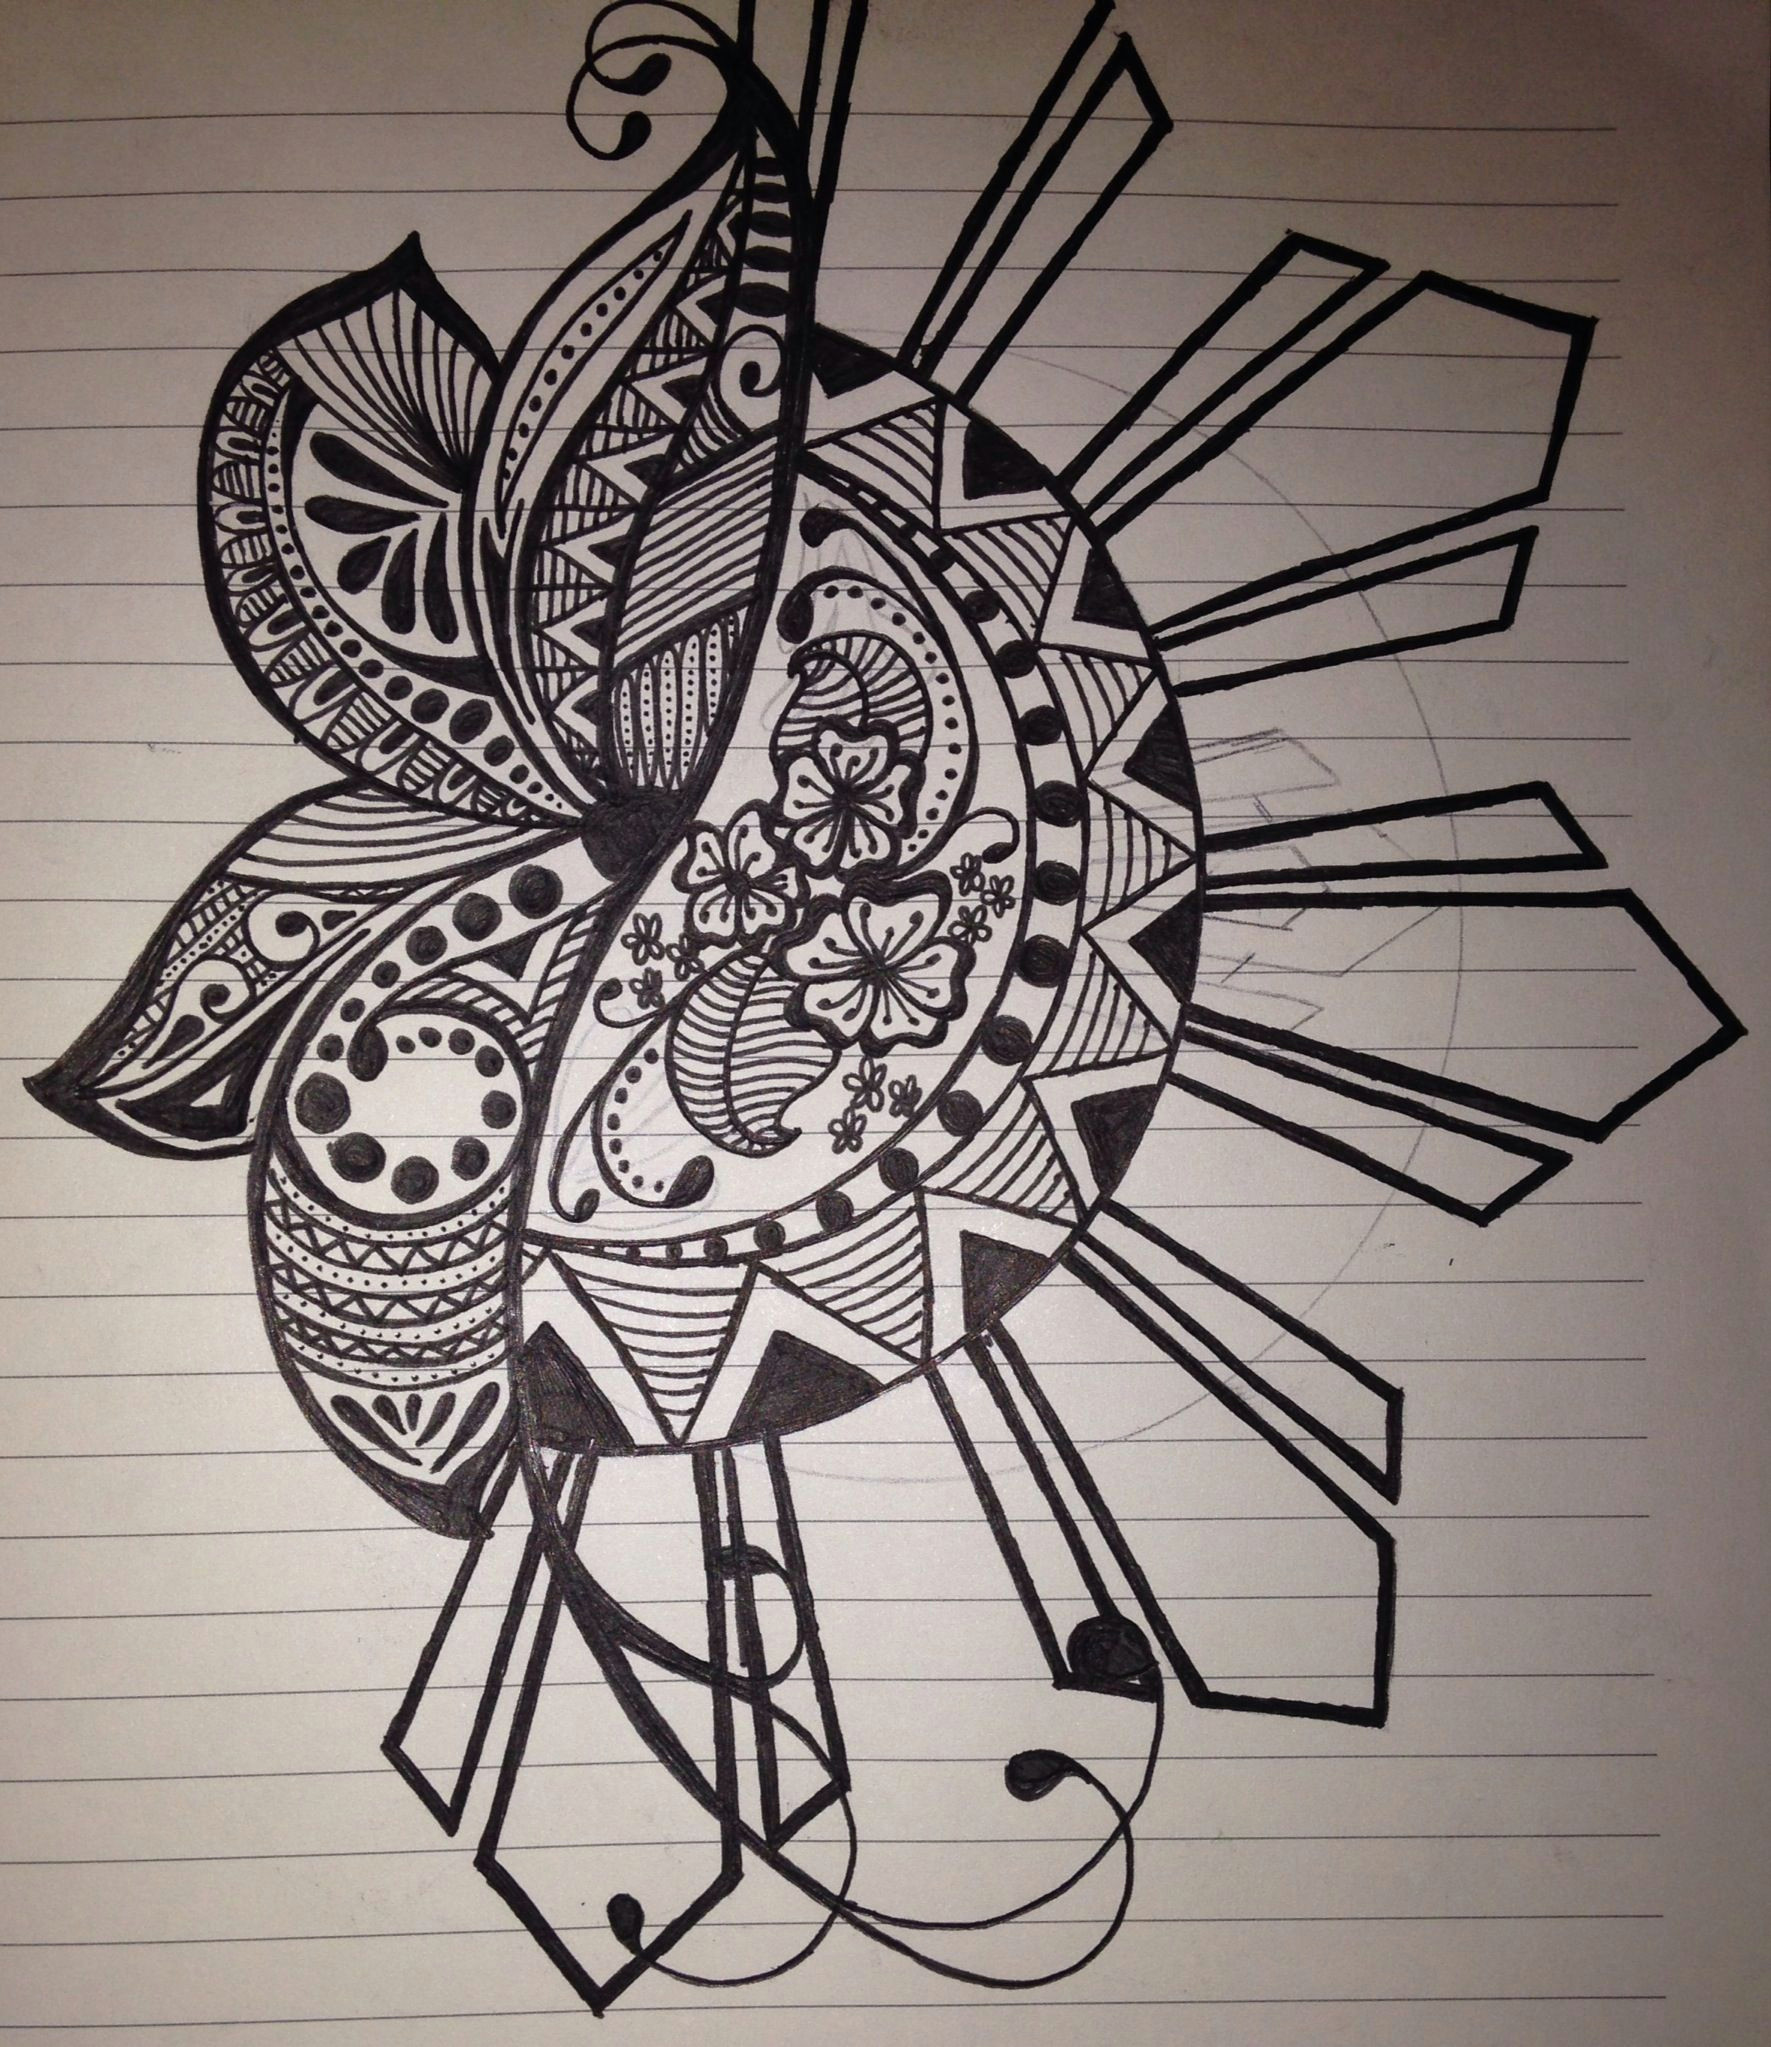 quick sketch of mine i incorporated the filipino sun because i am half lots of different designs in the petals of the flower makes it interesting to me